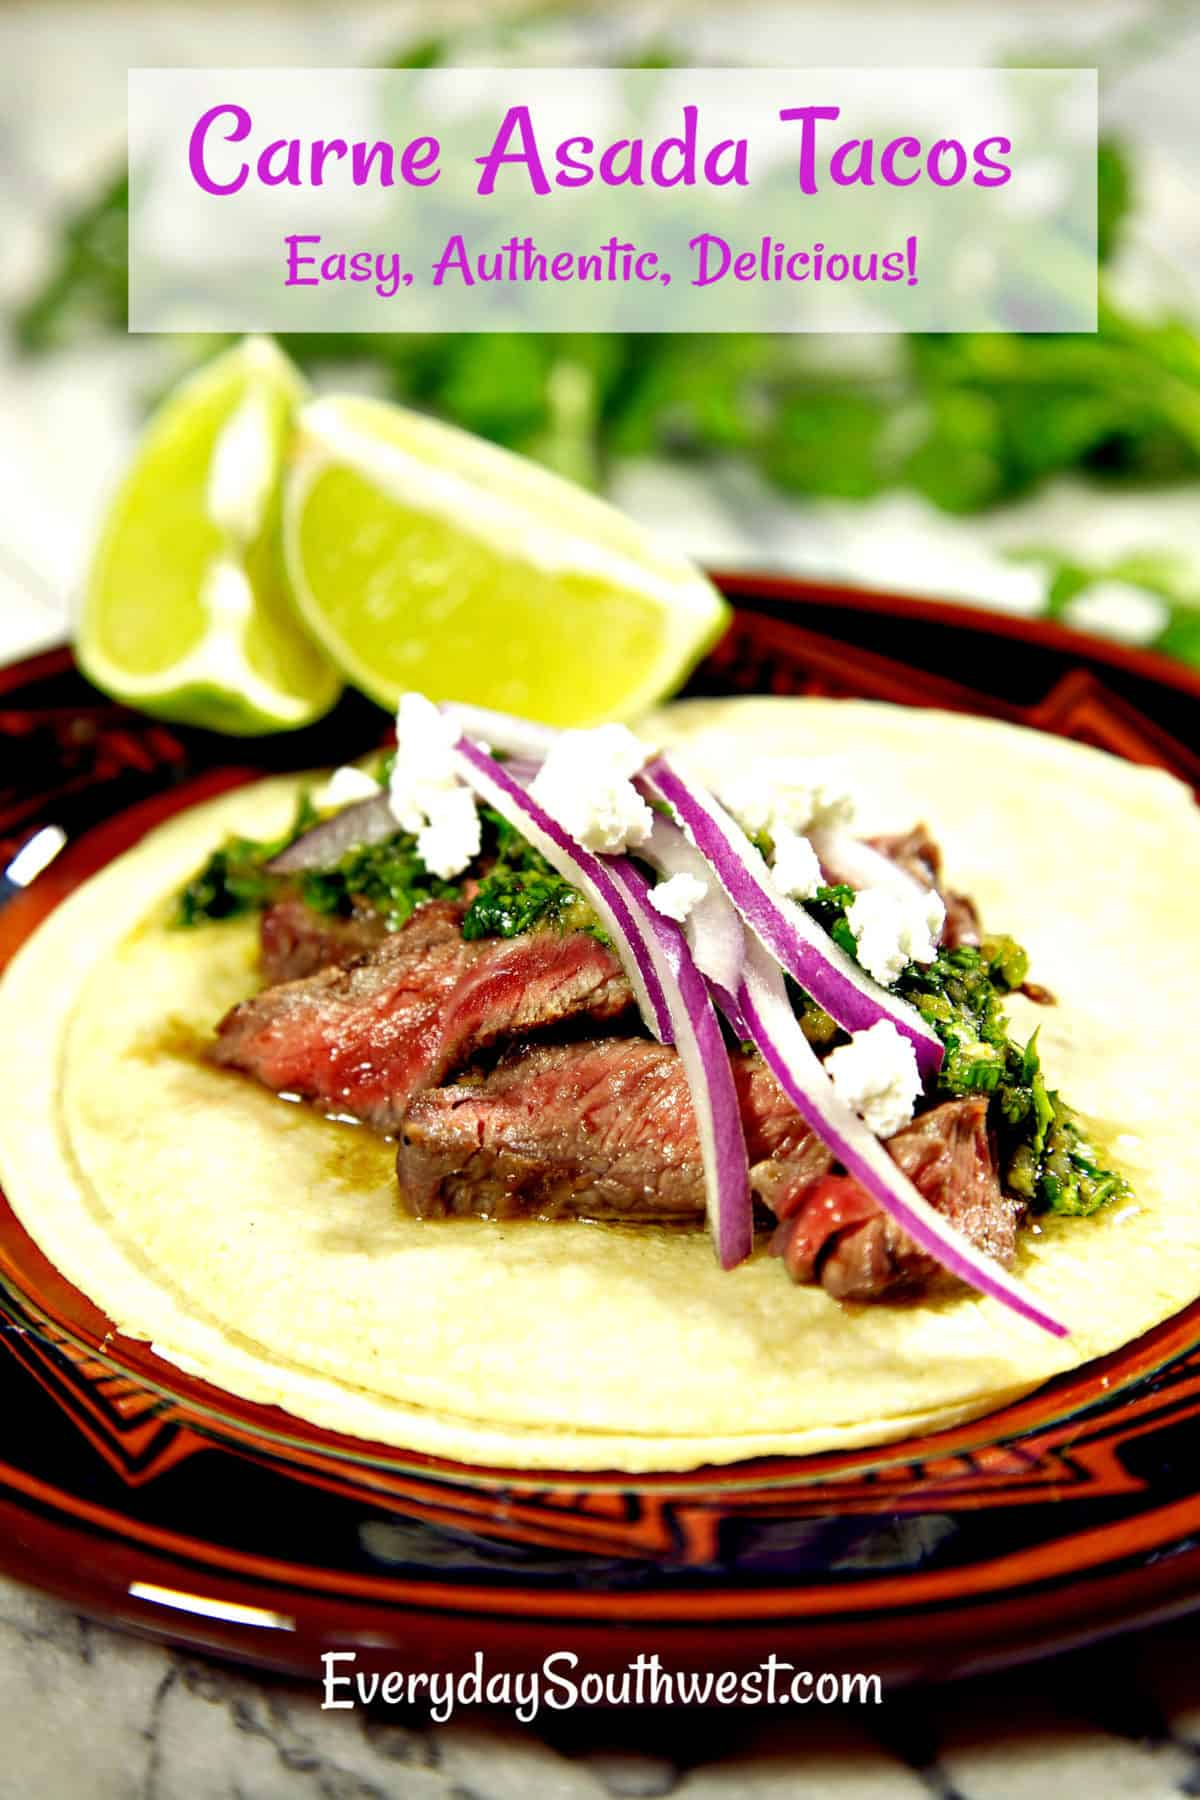 Carne Asada Tacos or Grilled Steak Taco